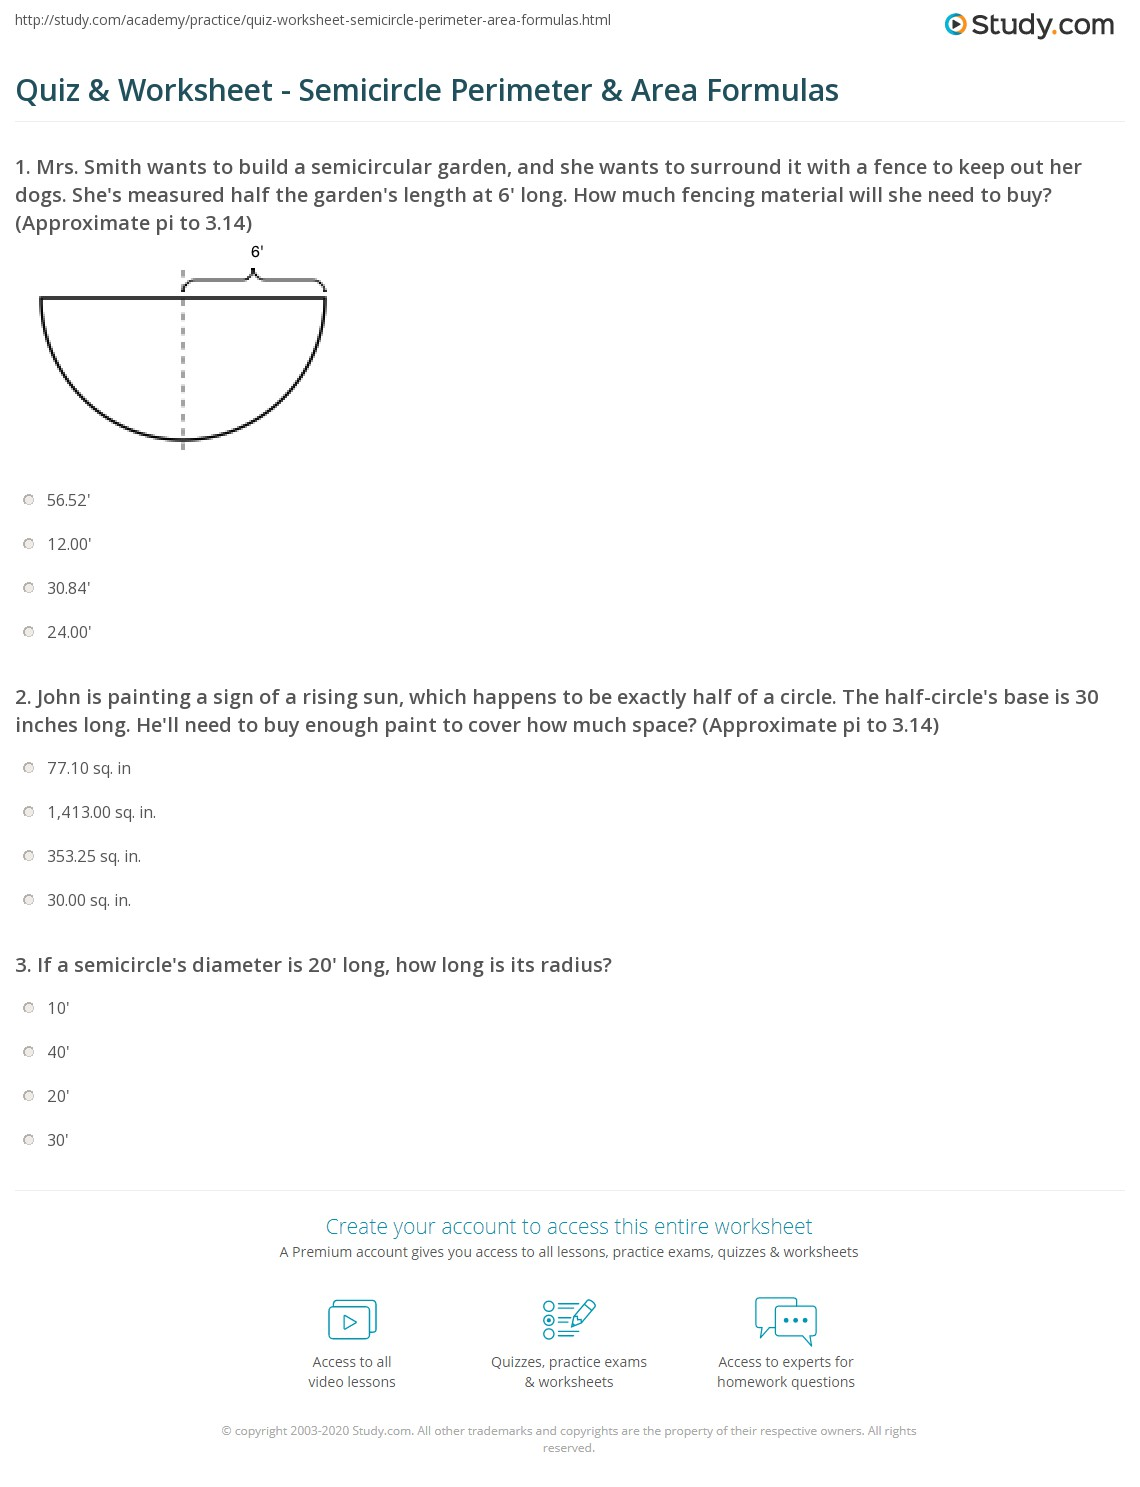 Quiz worksheet semicircle perimeter area formulas study 1 john is painting a sign of a rising sun which happens to be exactly half of a circle the half circles base is 30 inches long hell need to buy enough ccuart Image collections